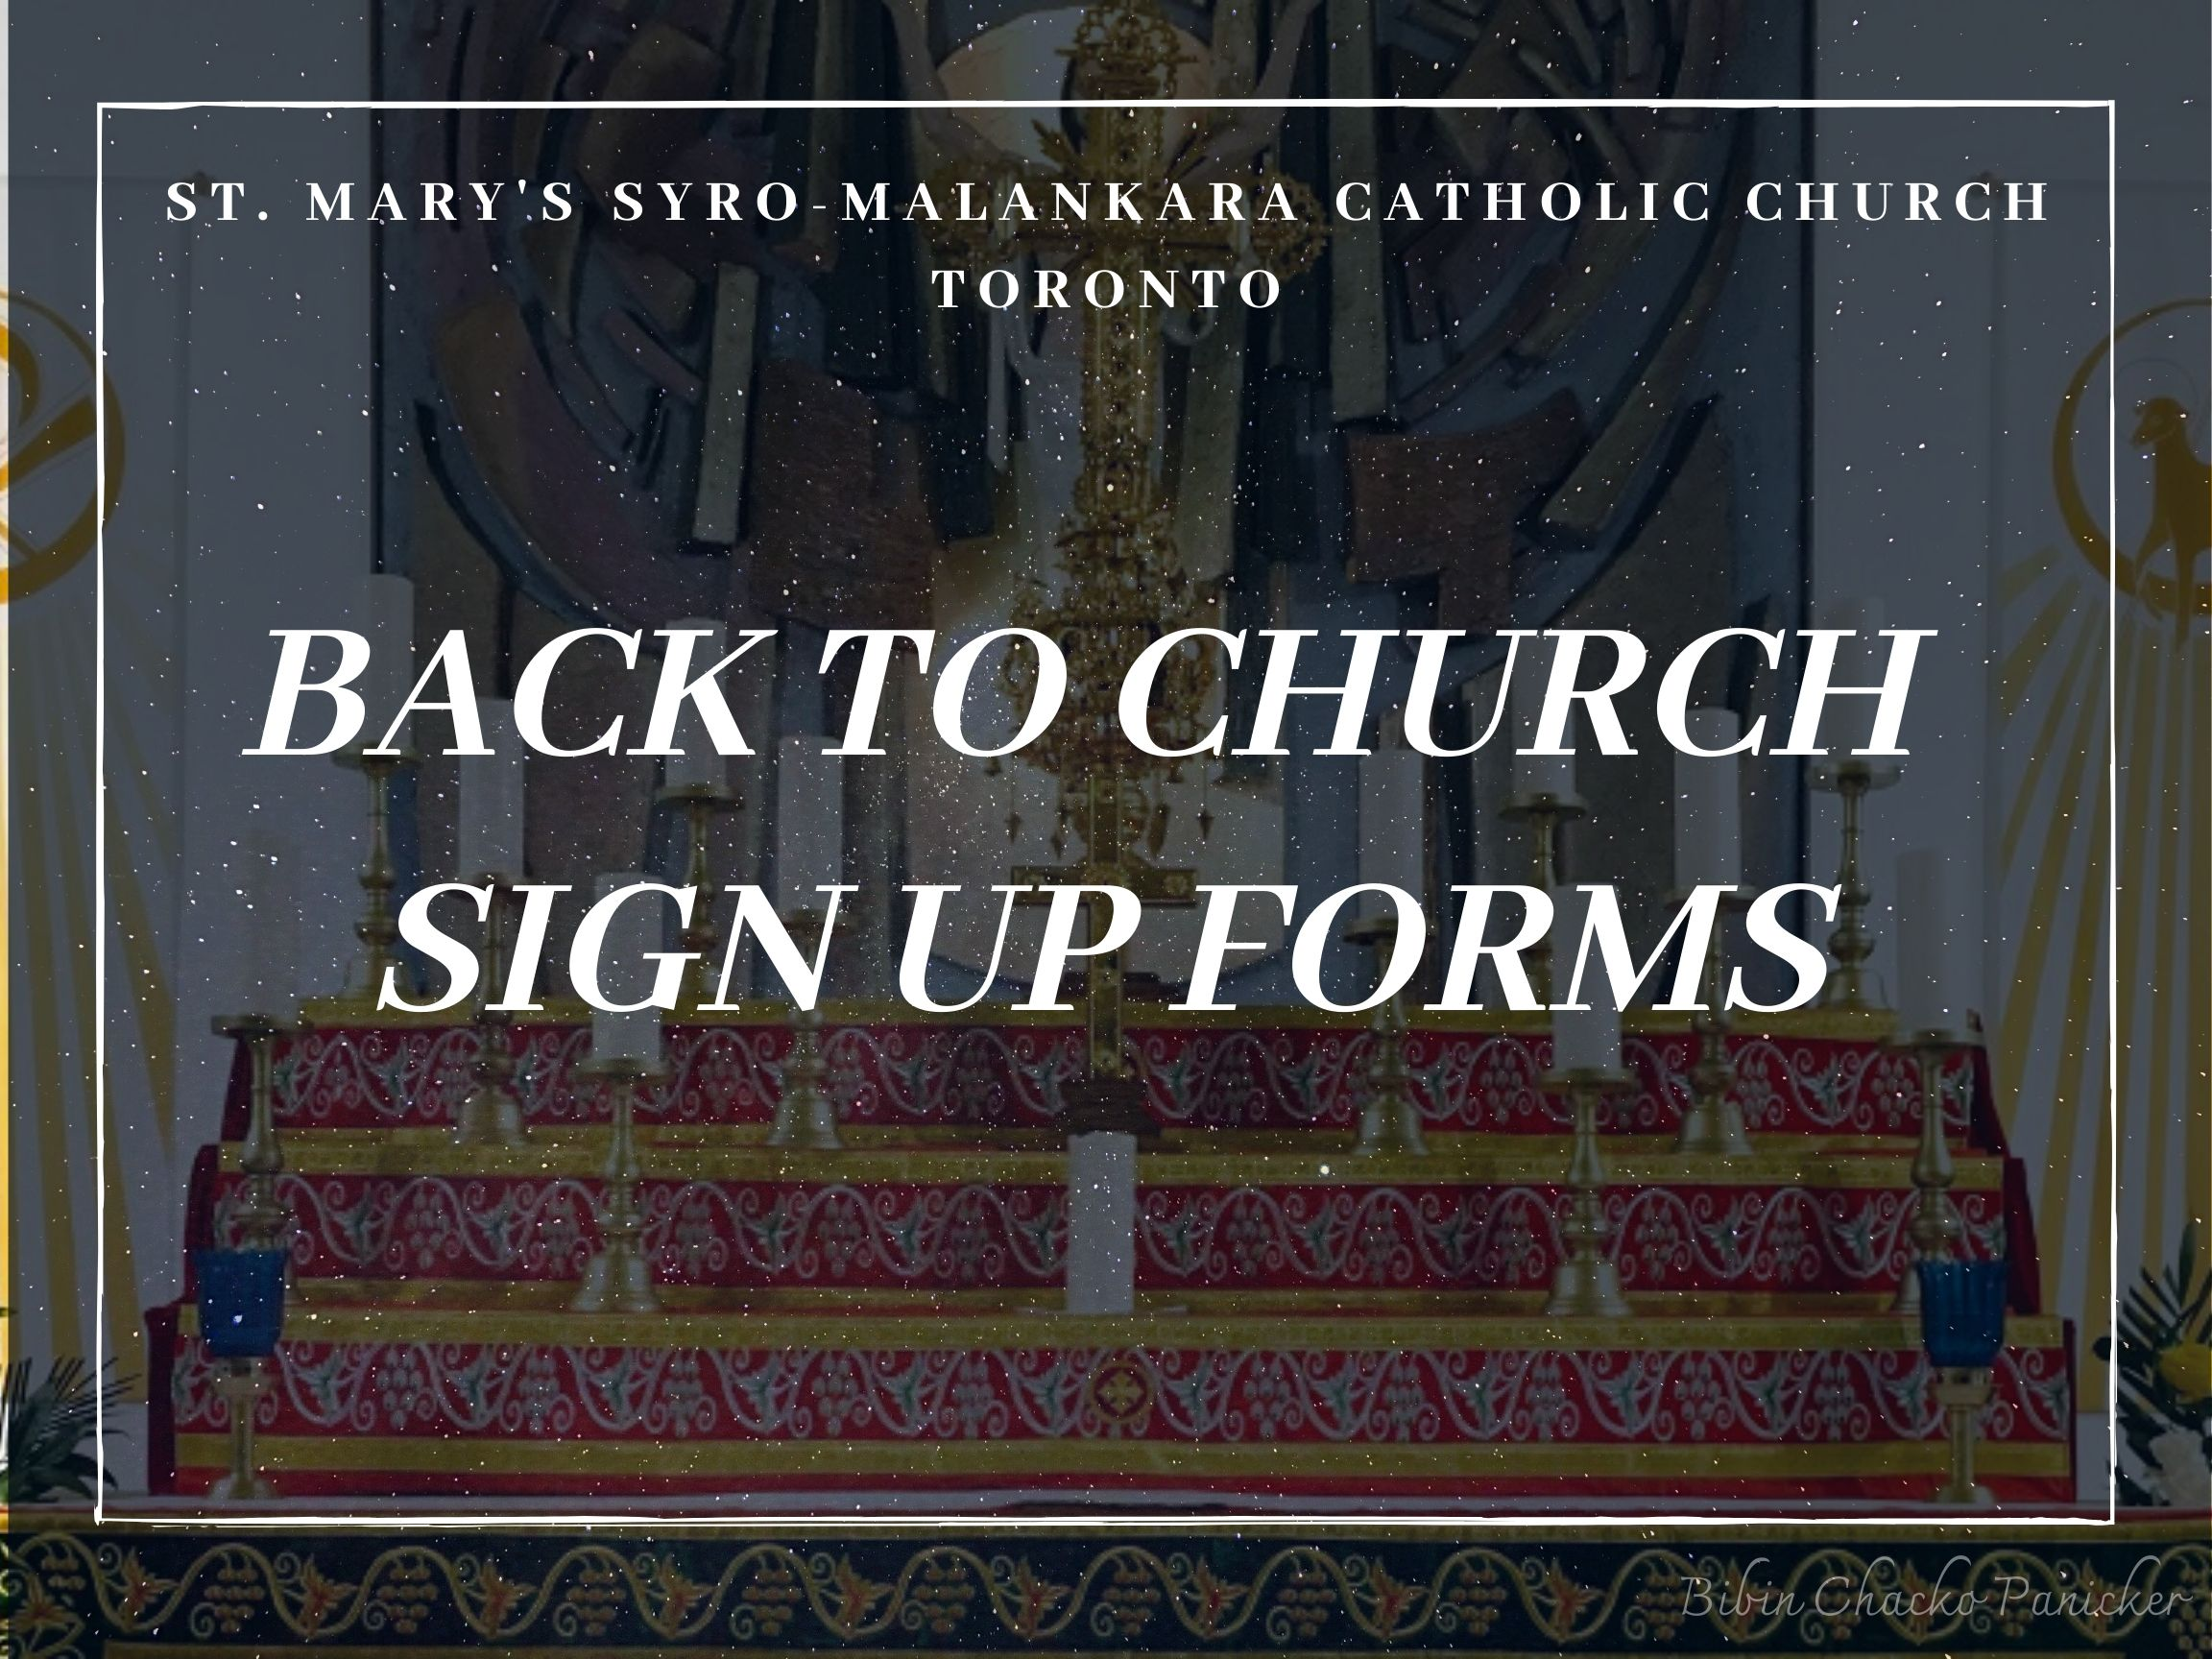 Back to church sign up - St Marys' Syro-Malankara Catholic Church, Toronto